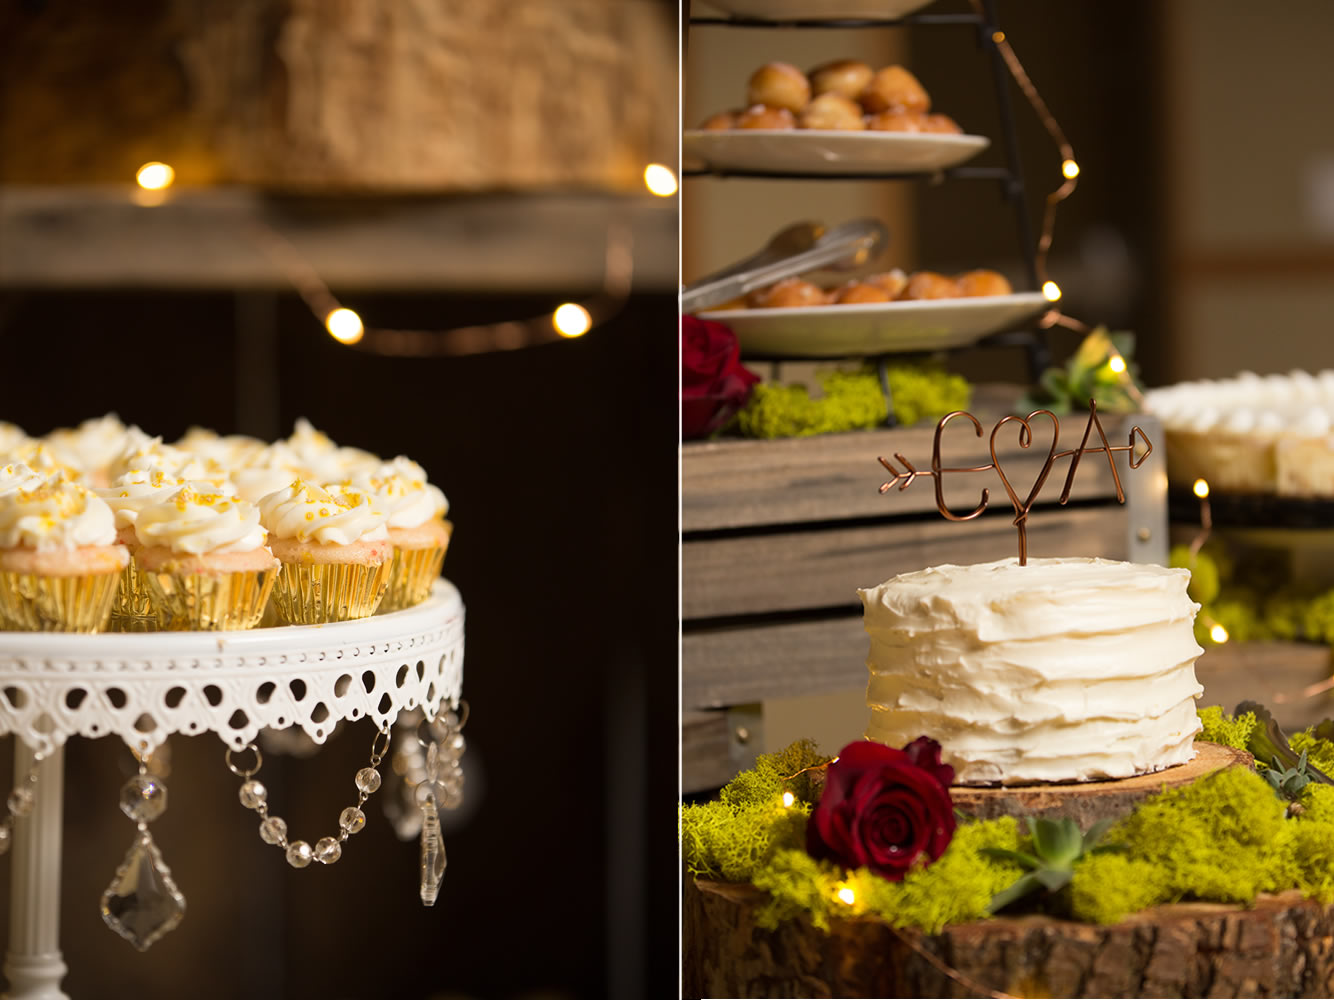 Cake Toppers – Puyallup / Chelan Wedding Planner & Flowers